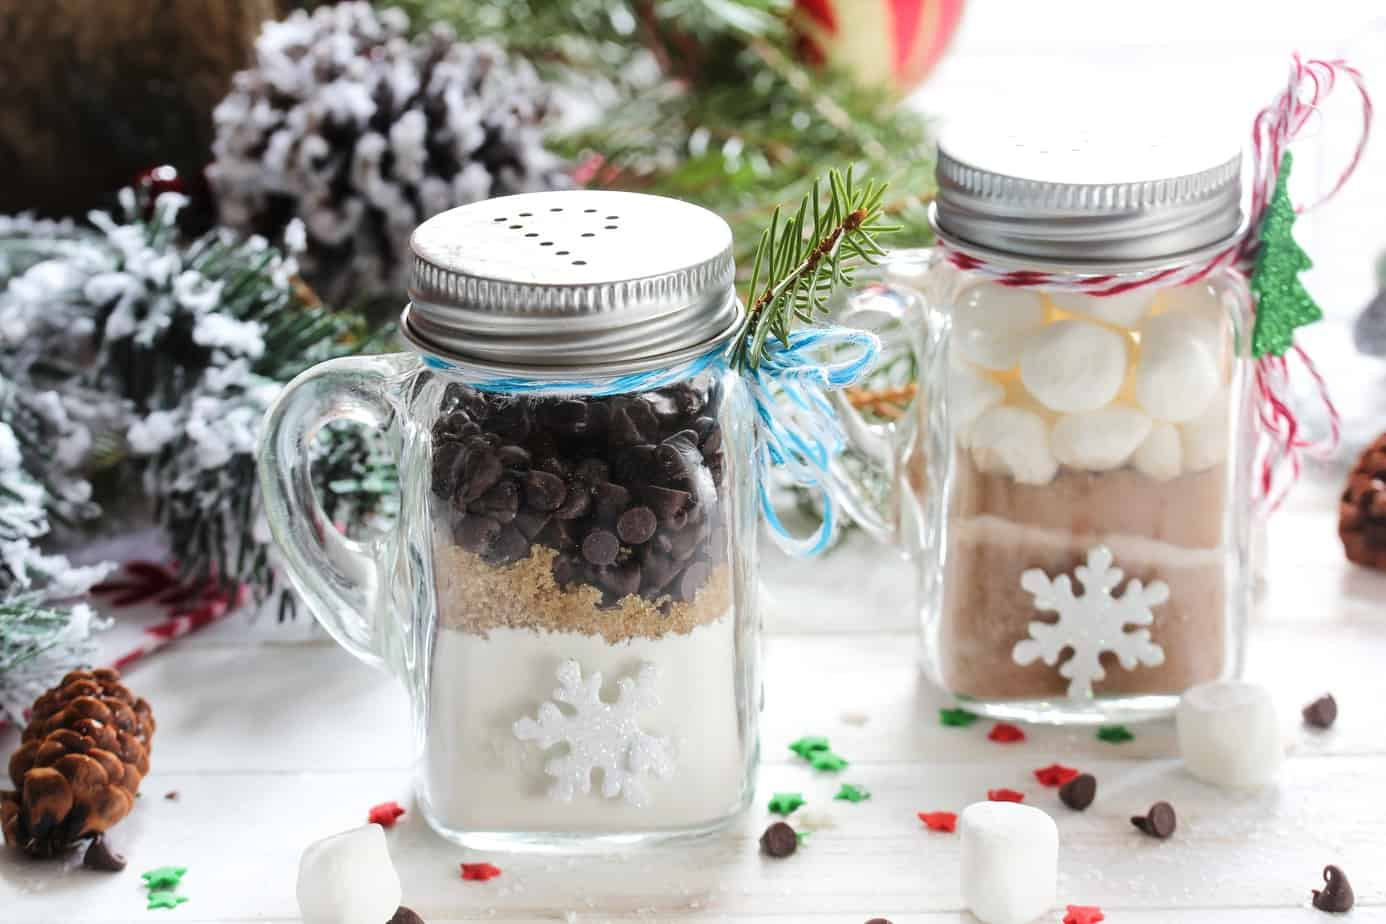 8 Frugal Dessert In A Jar Gifts To Give Or Sell This Holiday